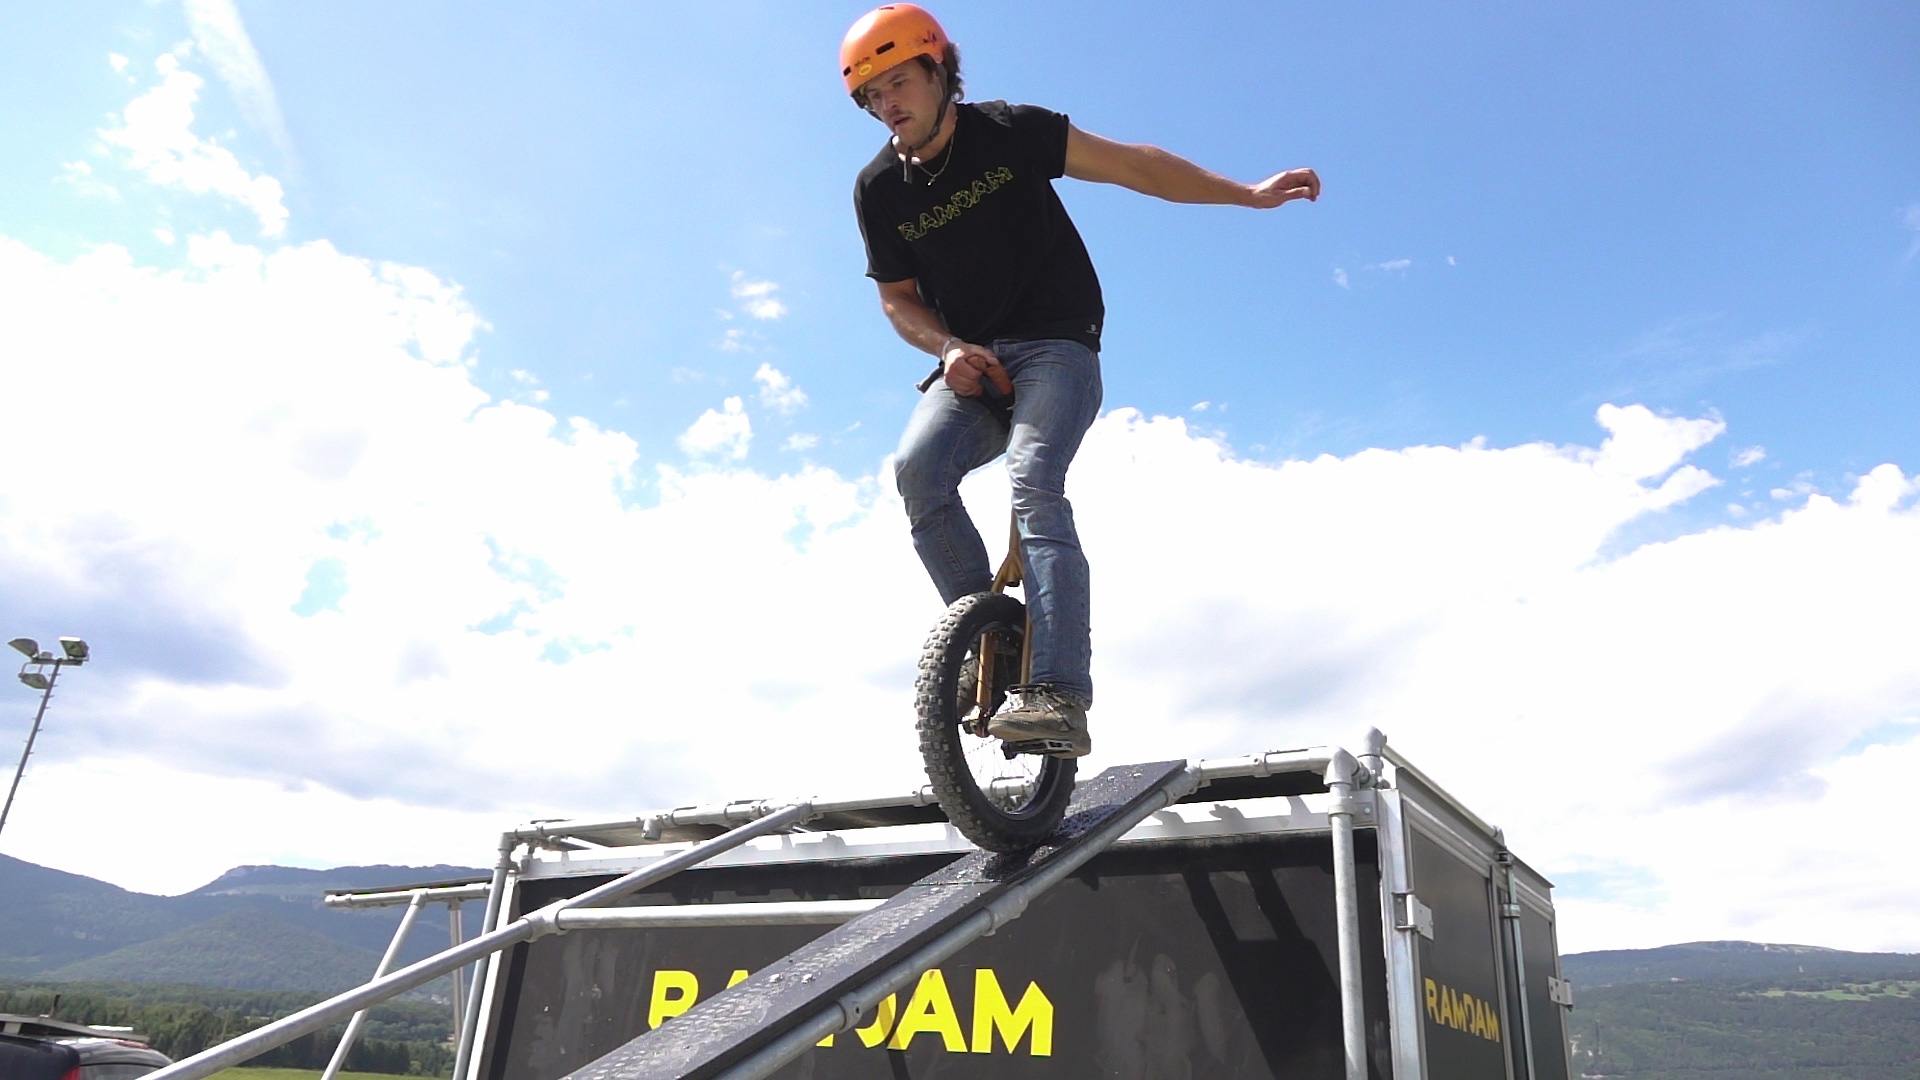 monocycle trial flat freestyle champvent ramdam pierre sturny